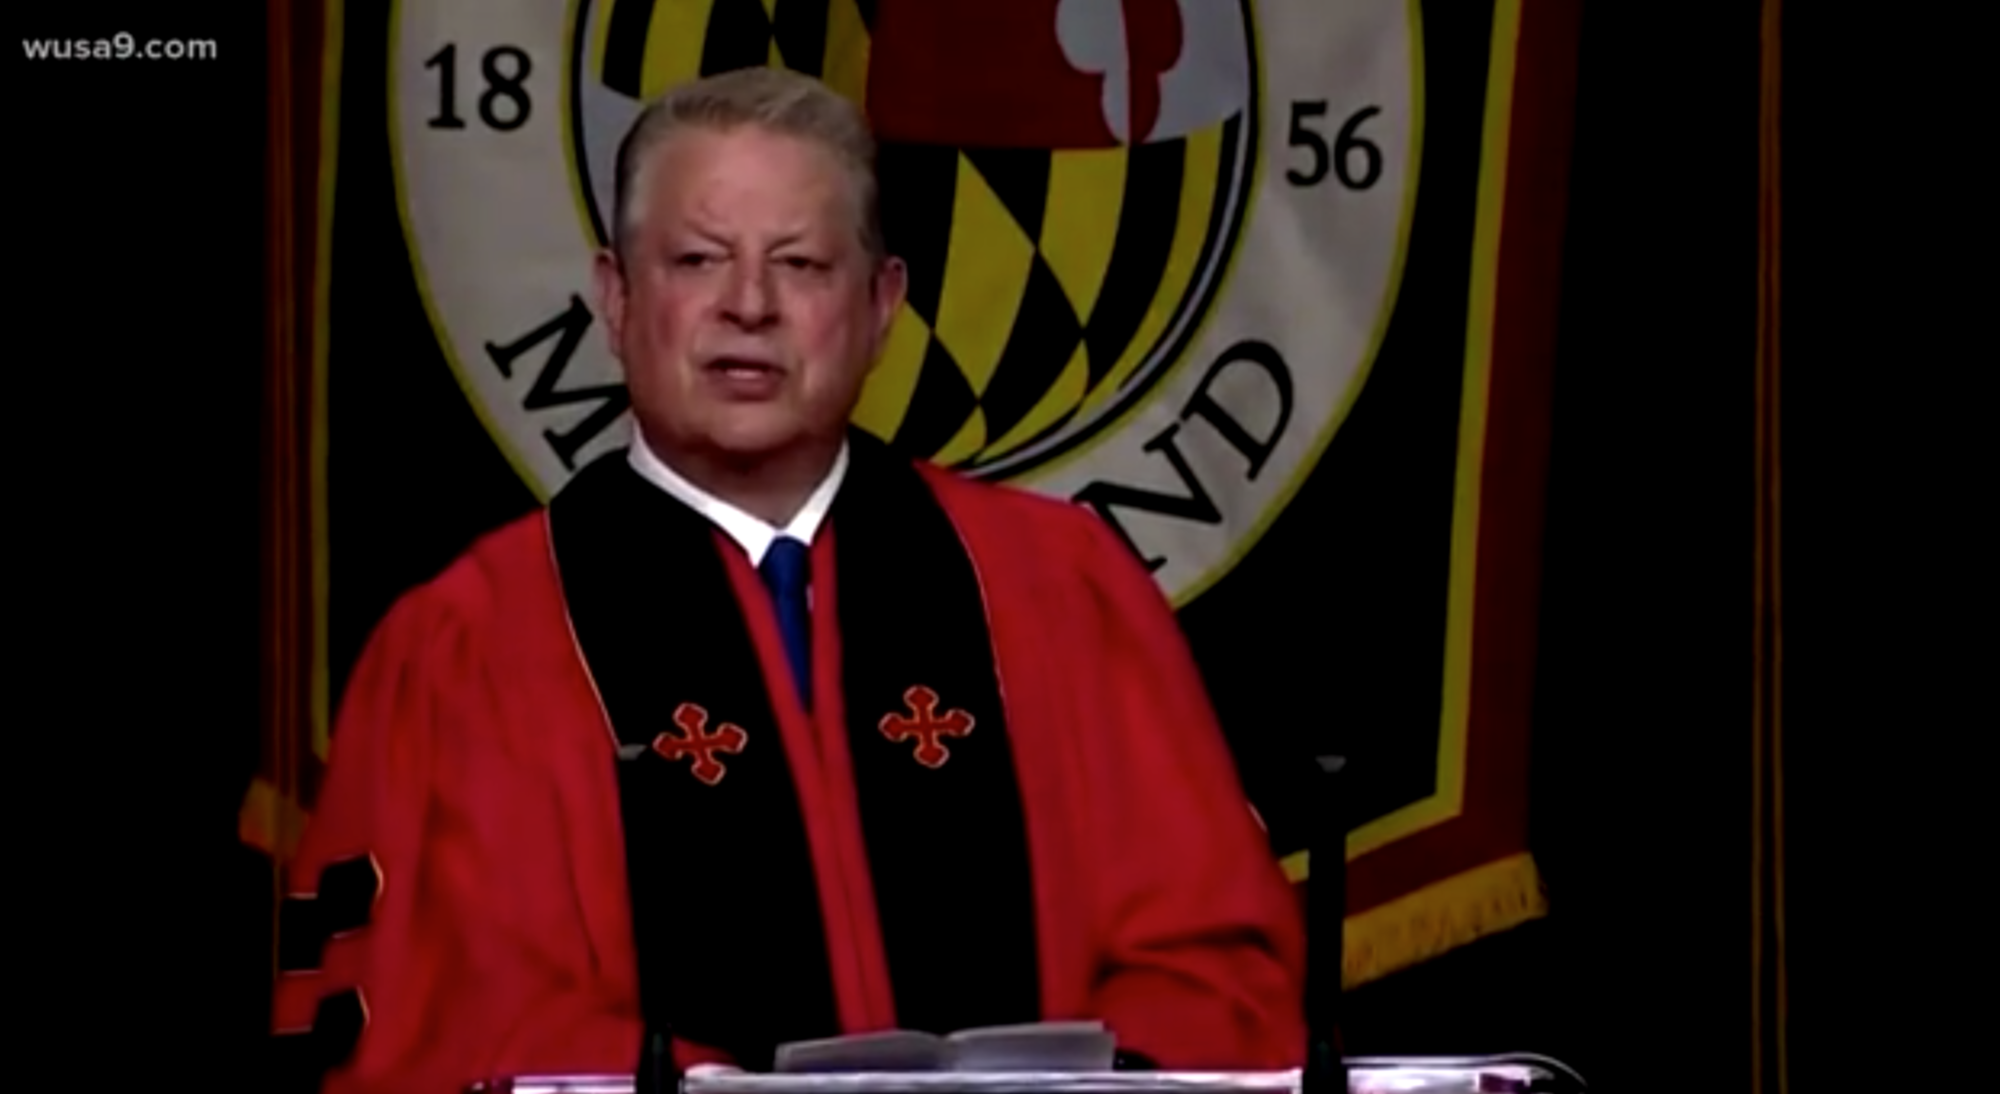 At UM commencement, Al Gore urges graduates 'to reclaim the integrity of American democracy'